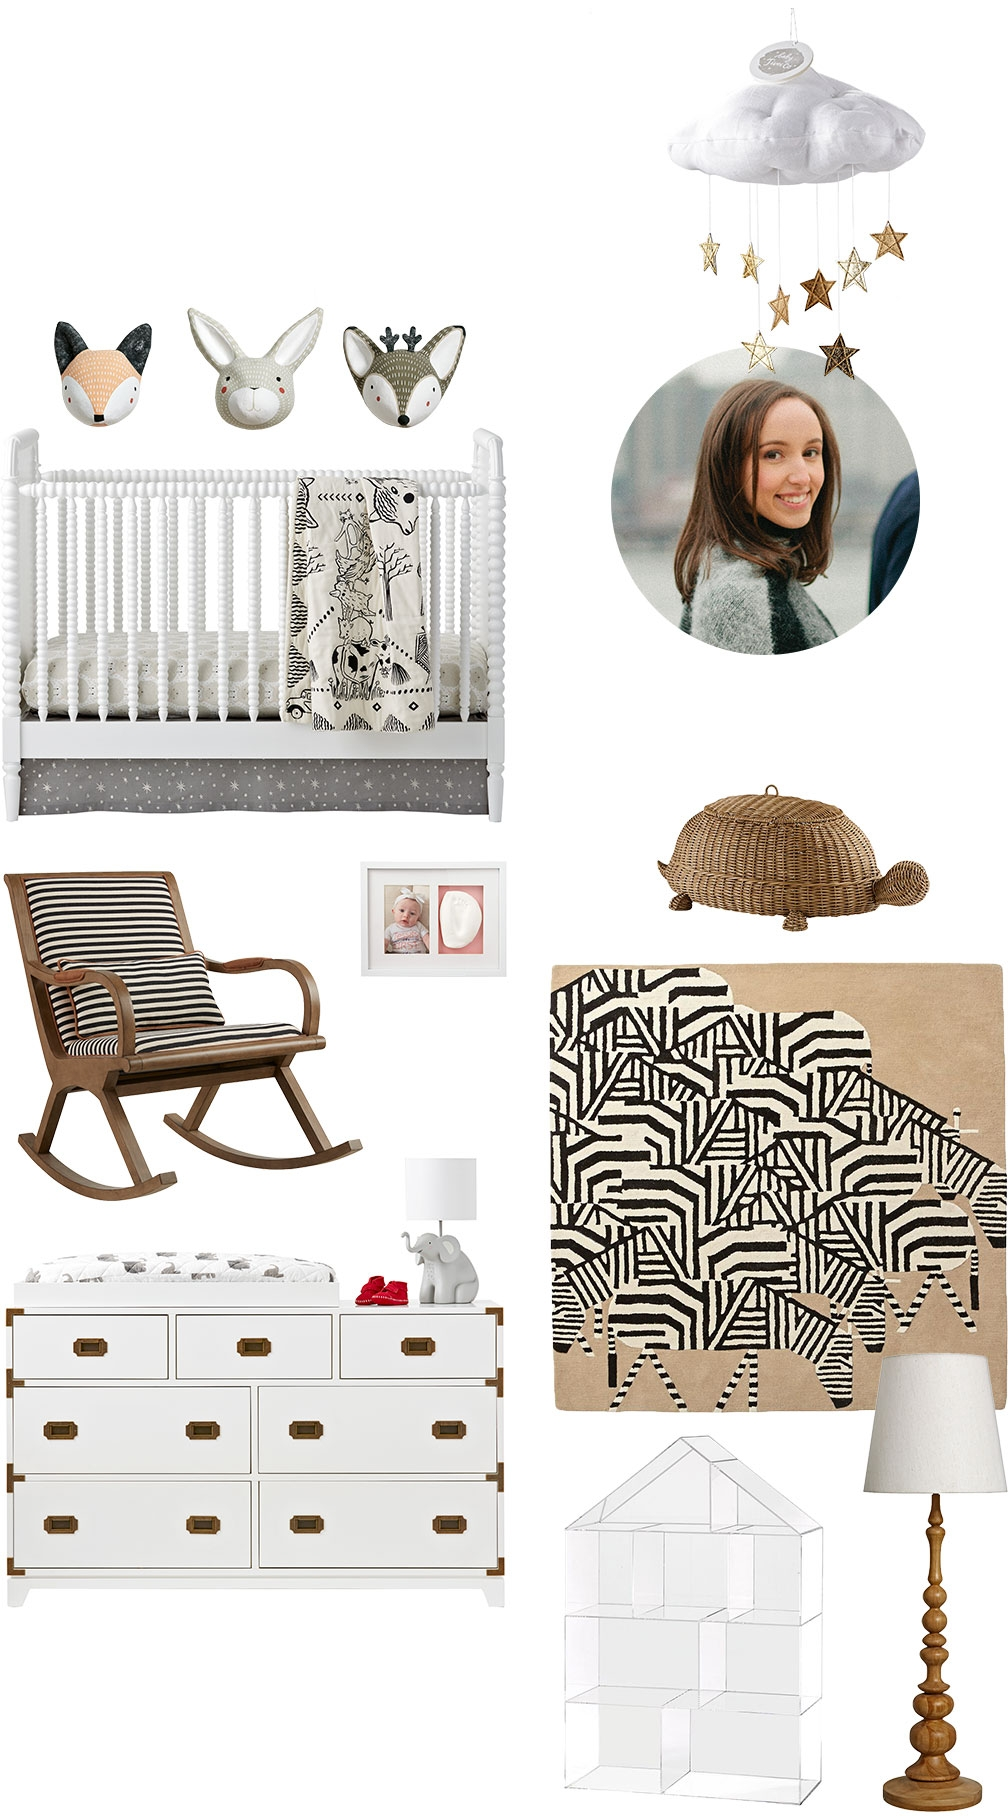 Compilation of product images that Living Editor Virginia Van Zanten at Vogue Magazine chose for her baby registry.